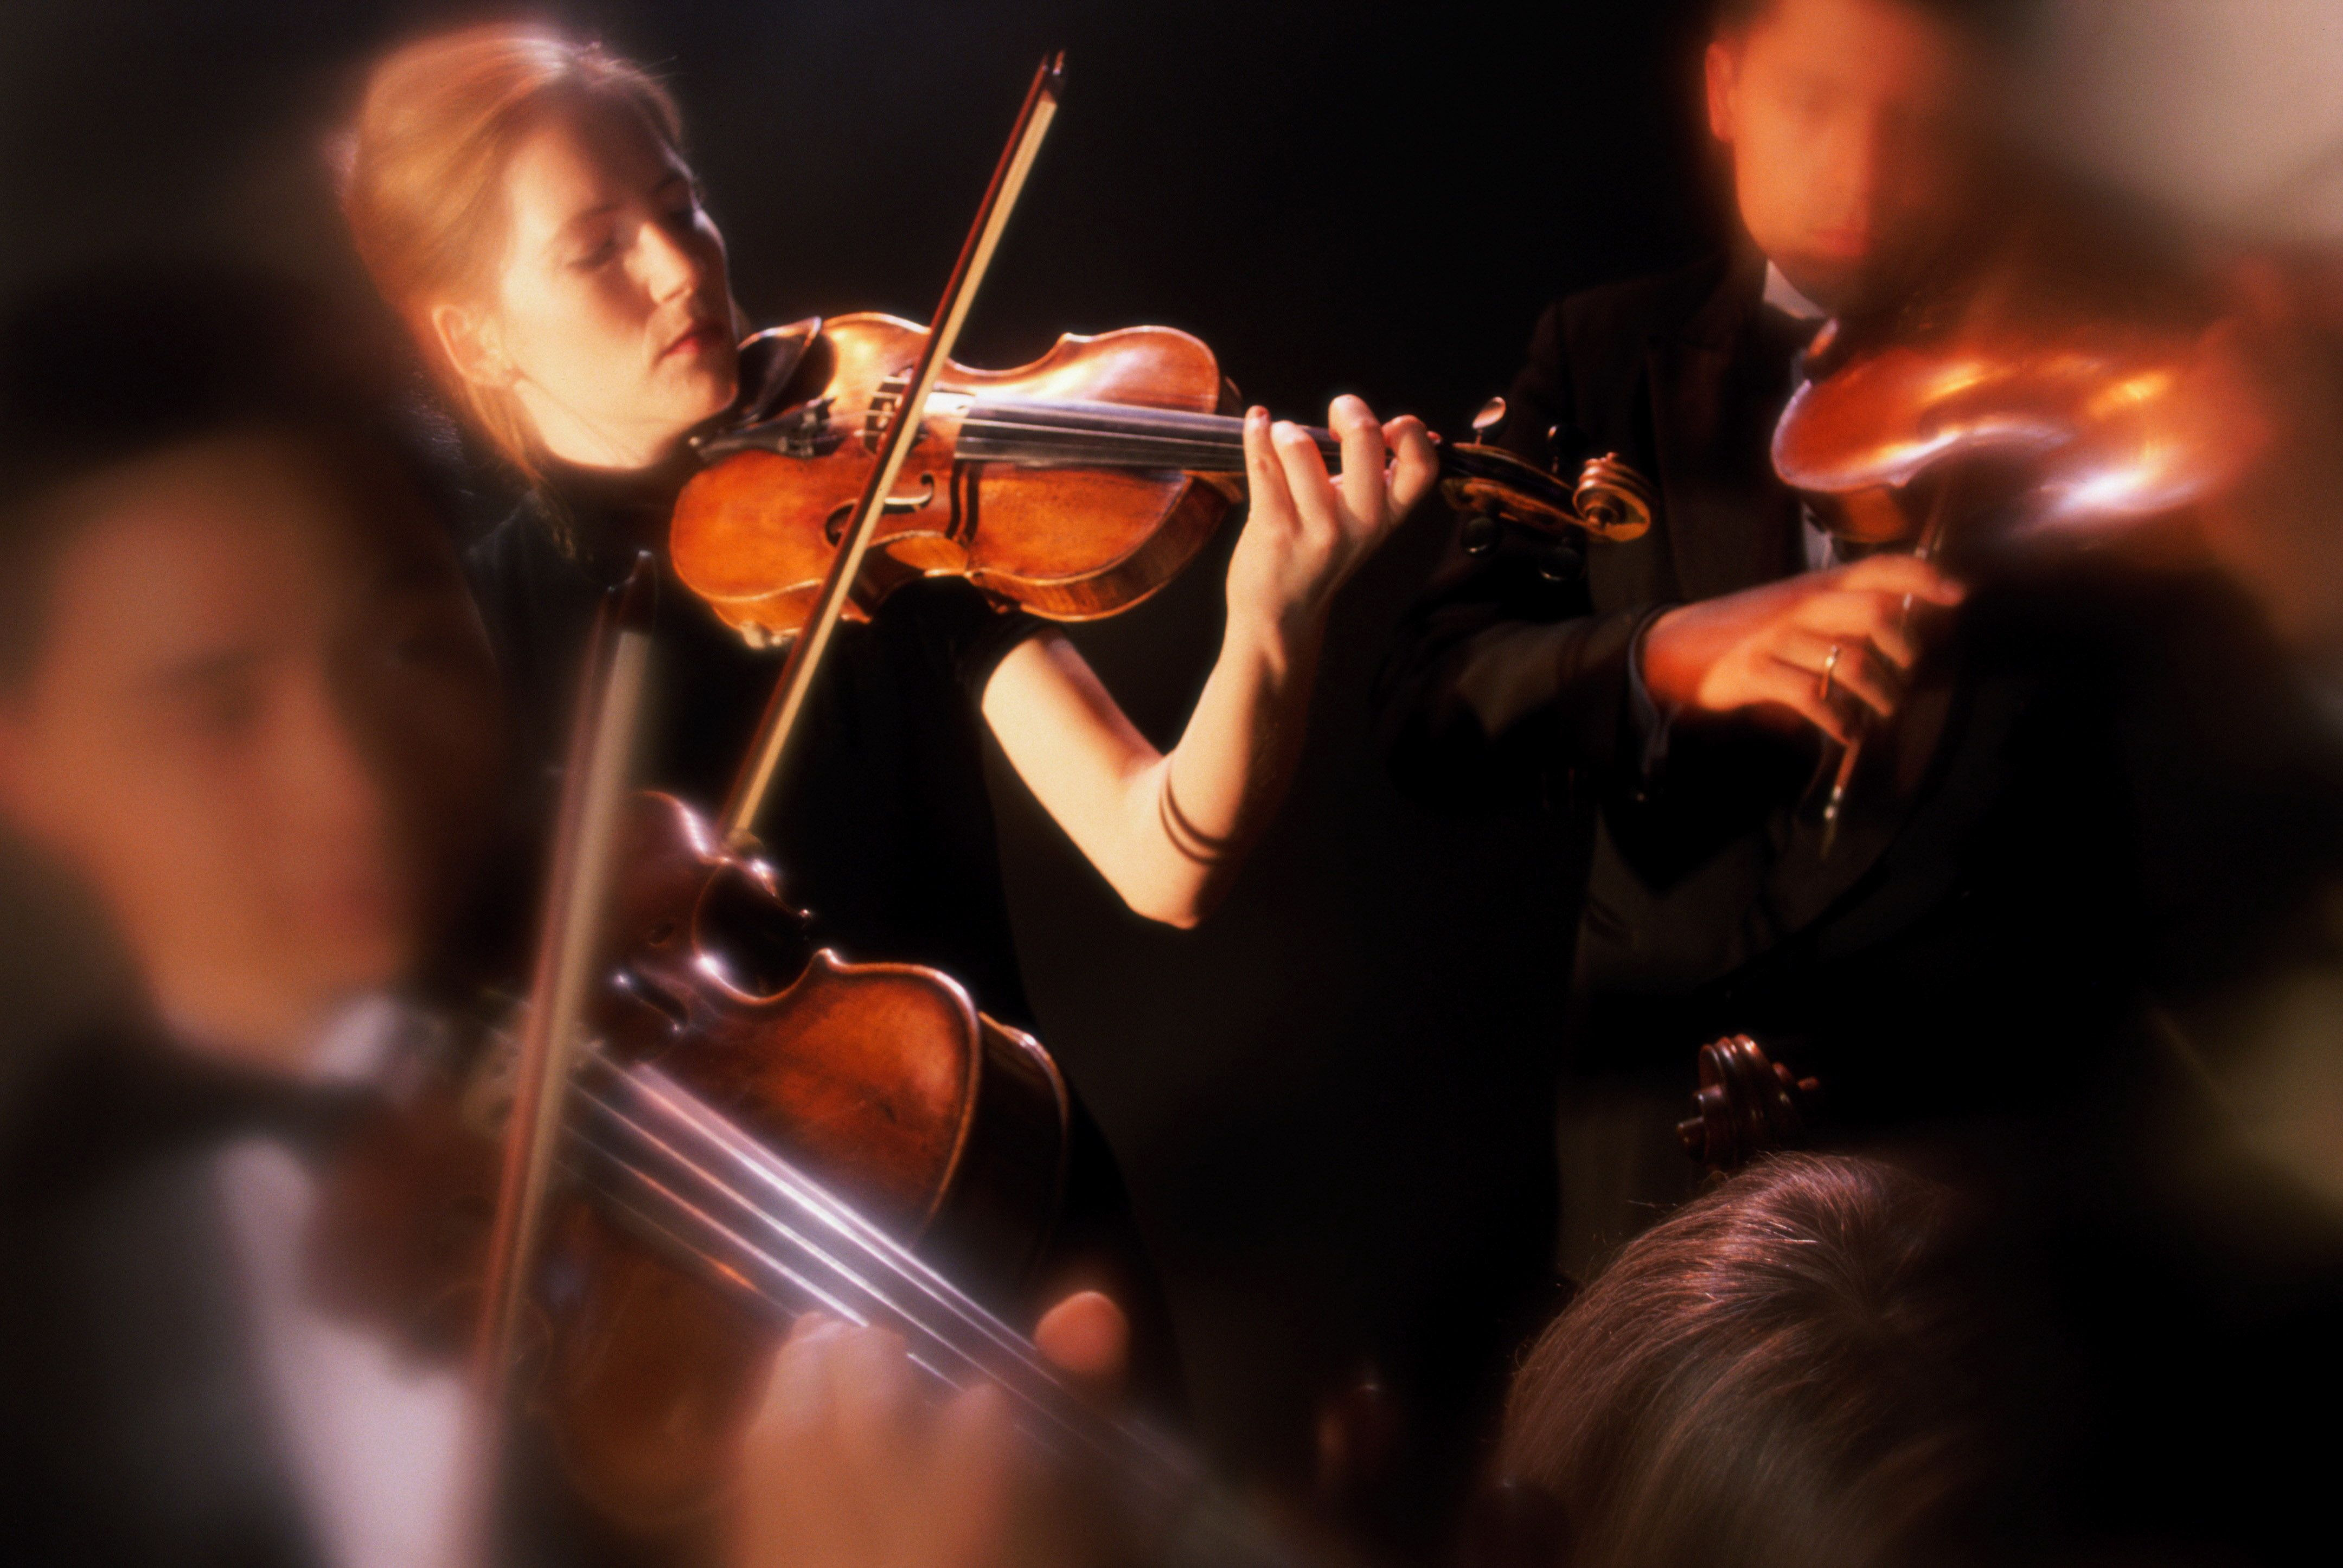 Attending a concert played by the famous Prague Philharmonic Orchestra is a stylish way to bid farewell to the year.